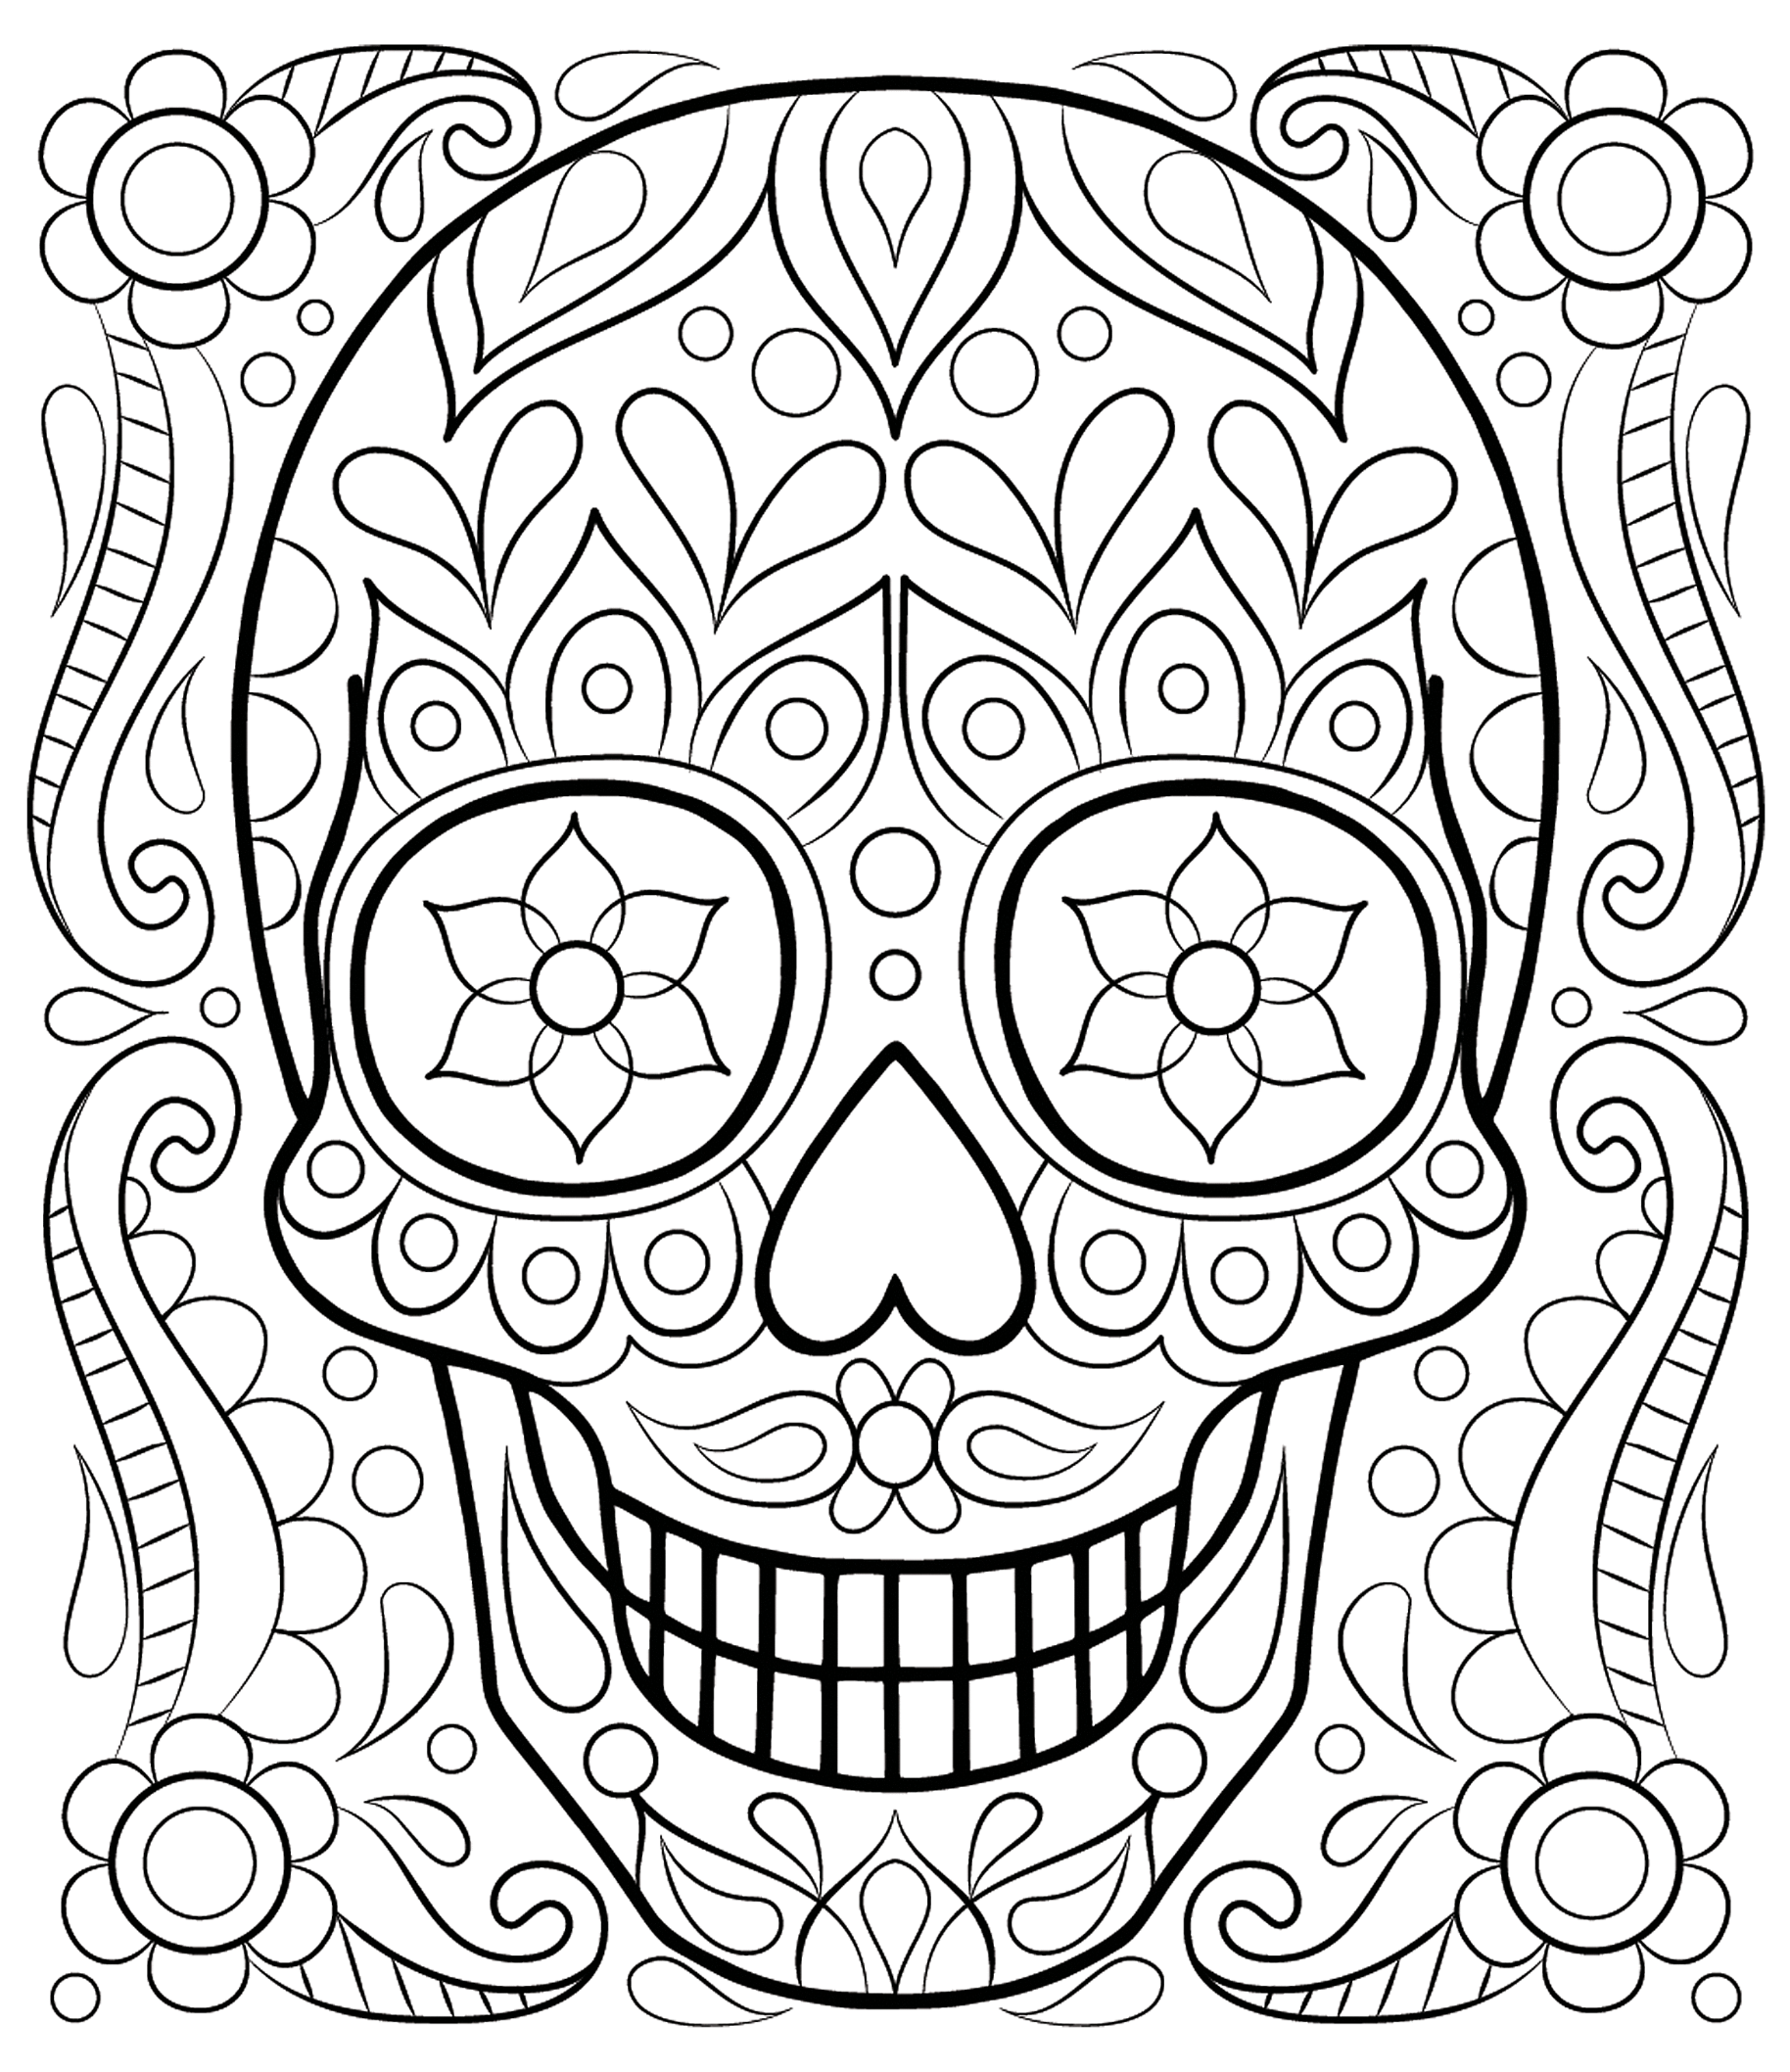 aduly coloring pages - photo#20